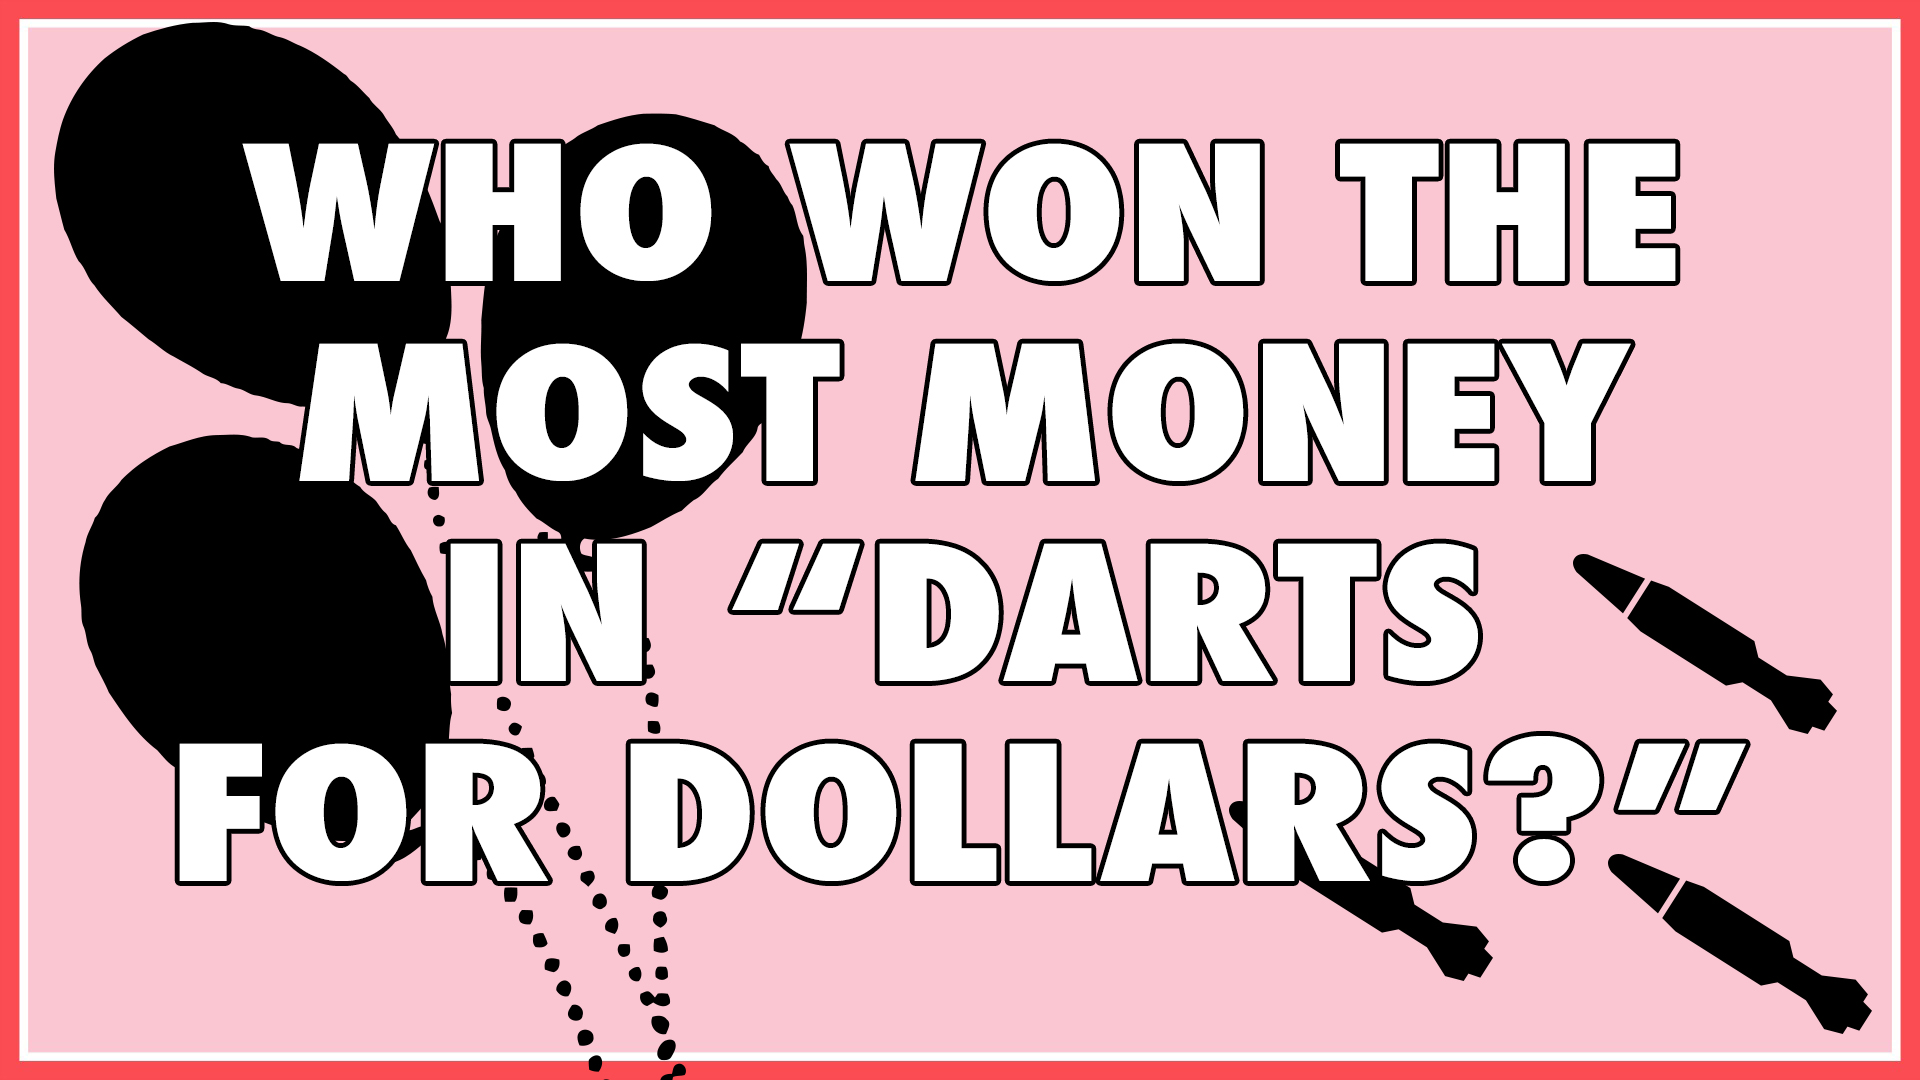 Who won the most money in